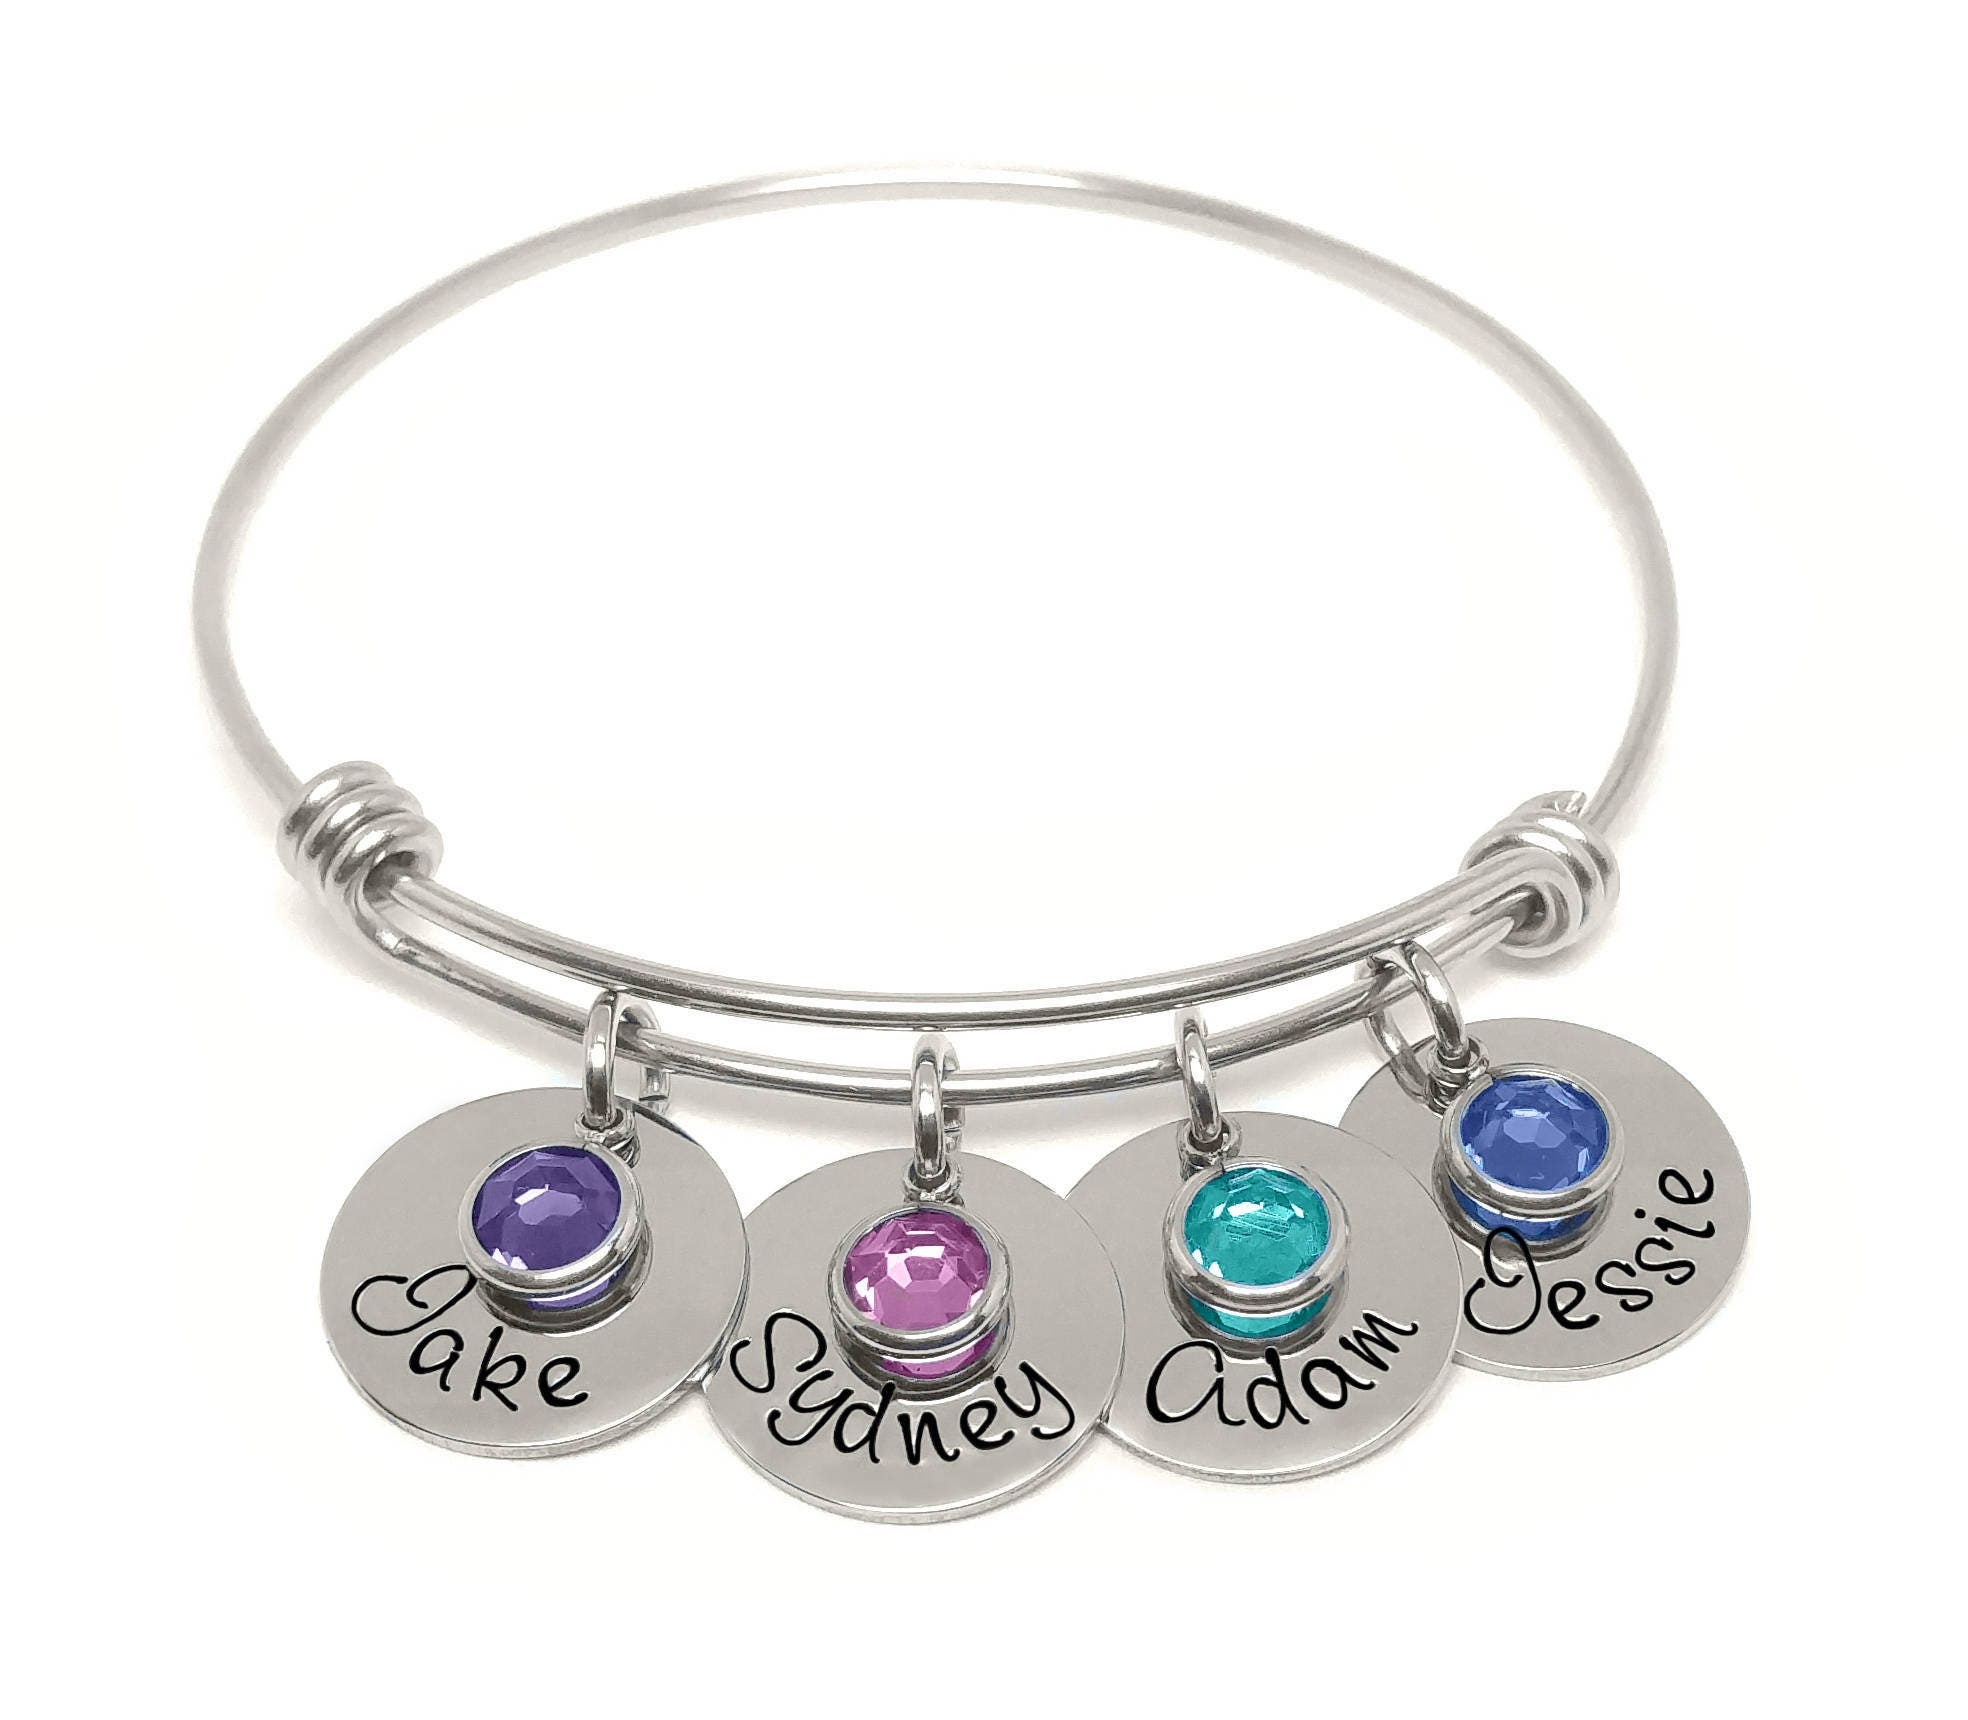 Personalized Bracelet Charms: Adjustable Bangle Bracelet- Personalized Bracelet- Name